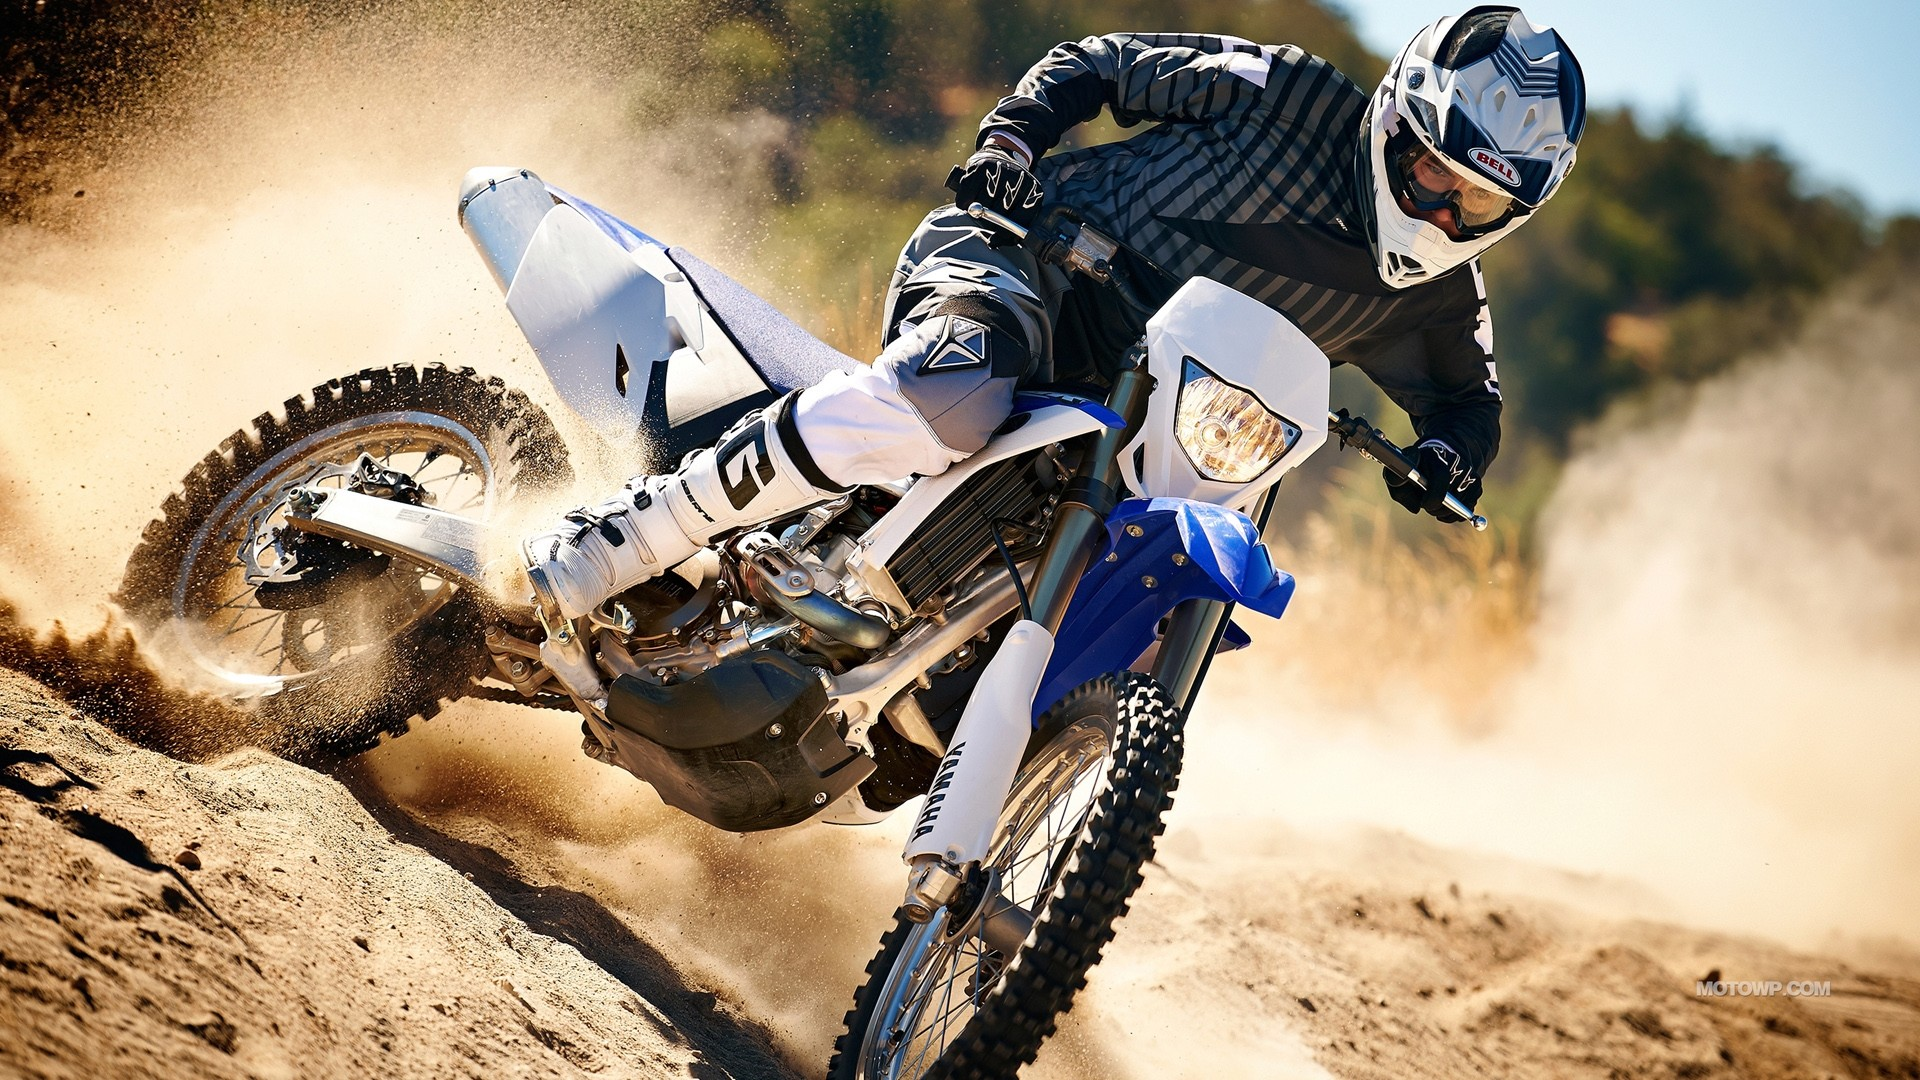 Dirt Bike hd wallpaper download